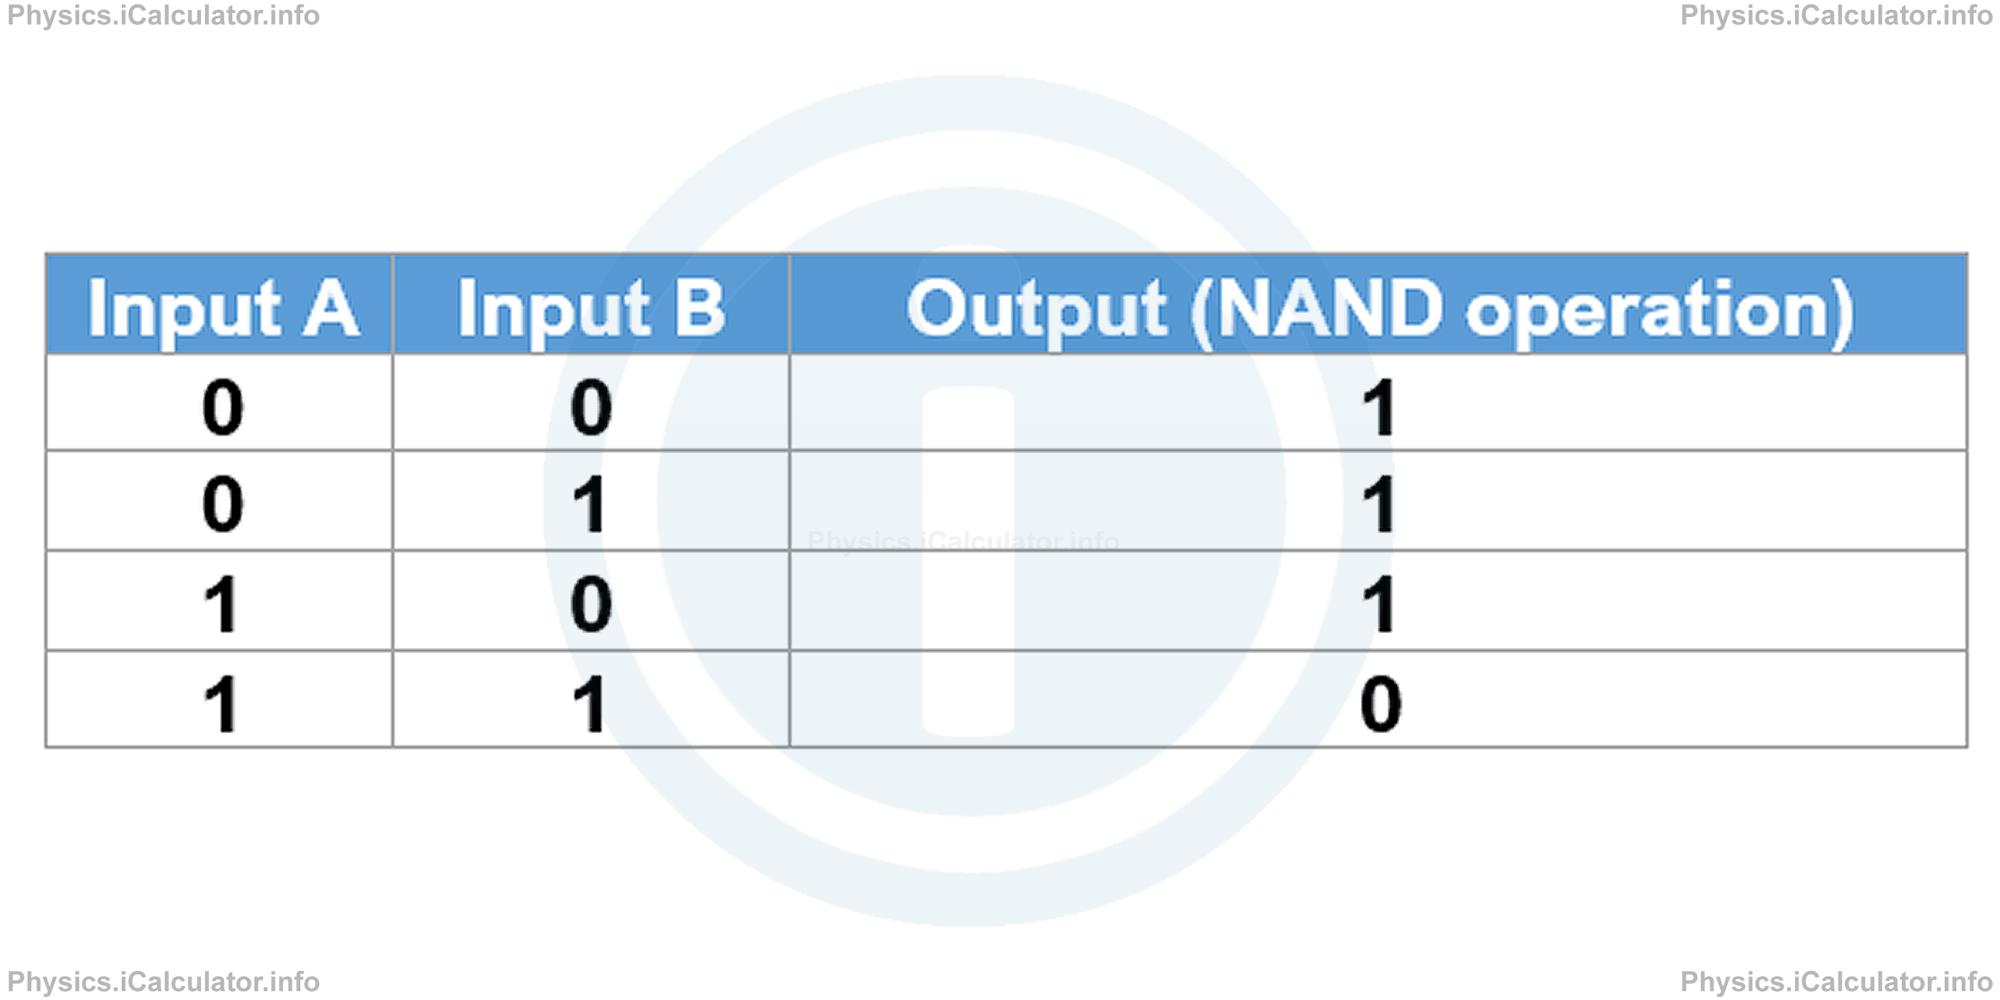 Physics Tutorials: This image provides visual information for the physics tutorial Electronic Essentials: Analogue and Digital Signals, Binary Operations and Logic Gates